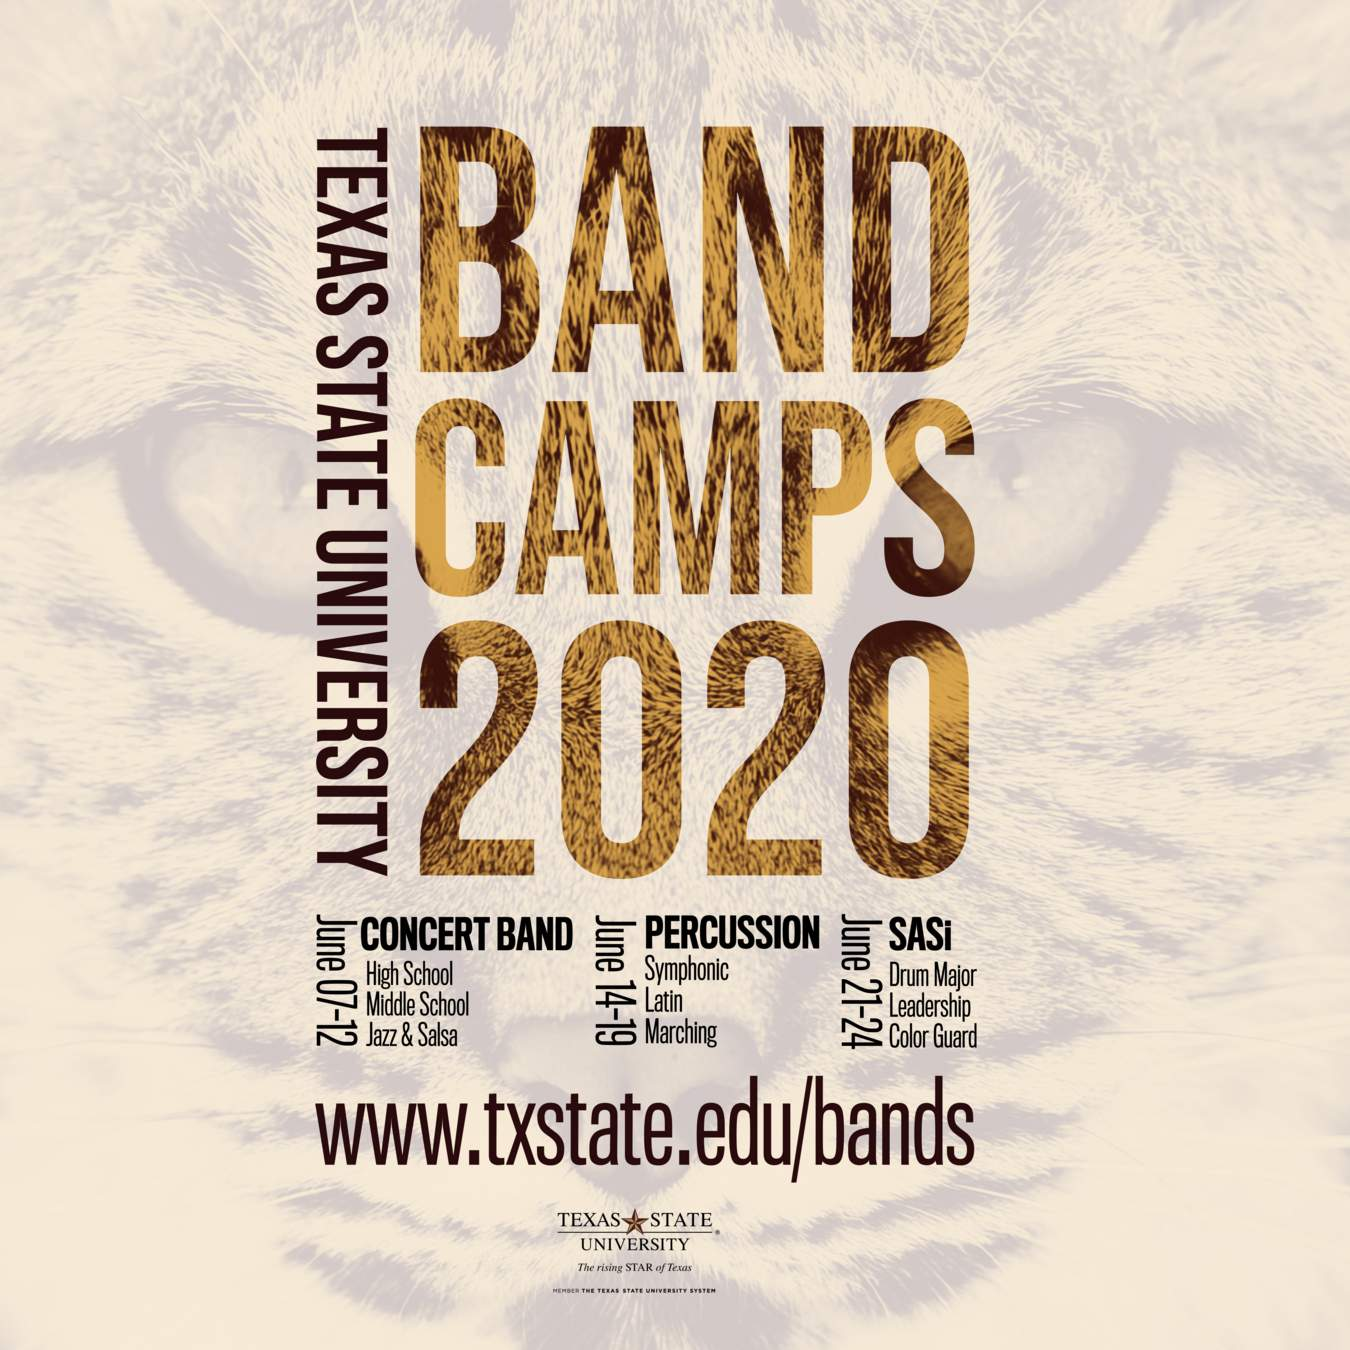 Band Camp 2020 Poster